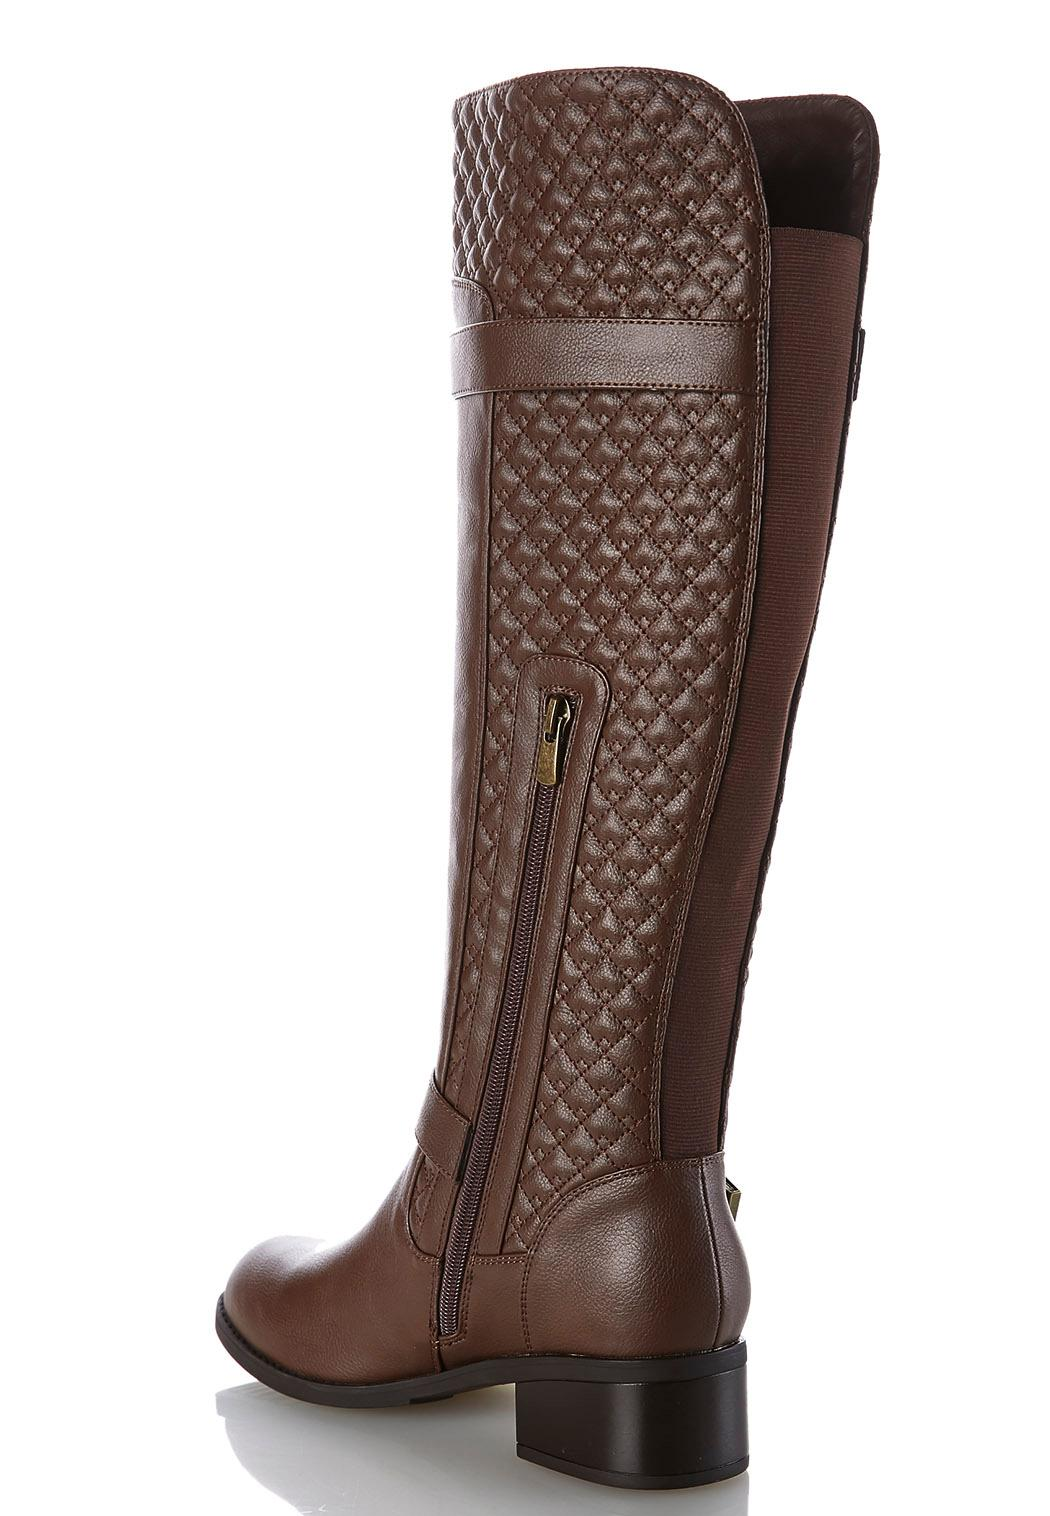 Quilted Riding Boots Tall Cato Fashions